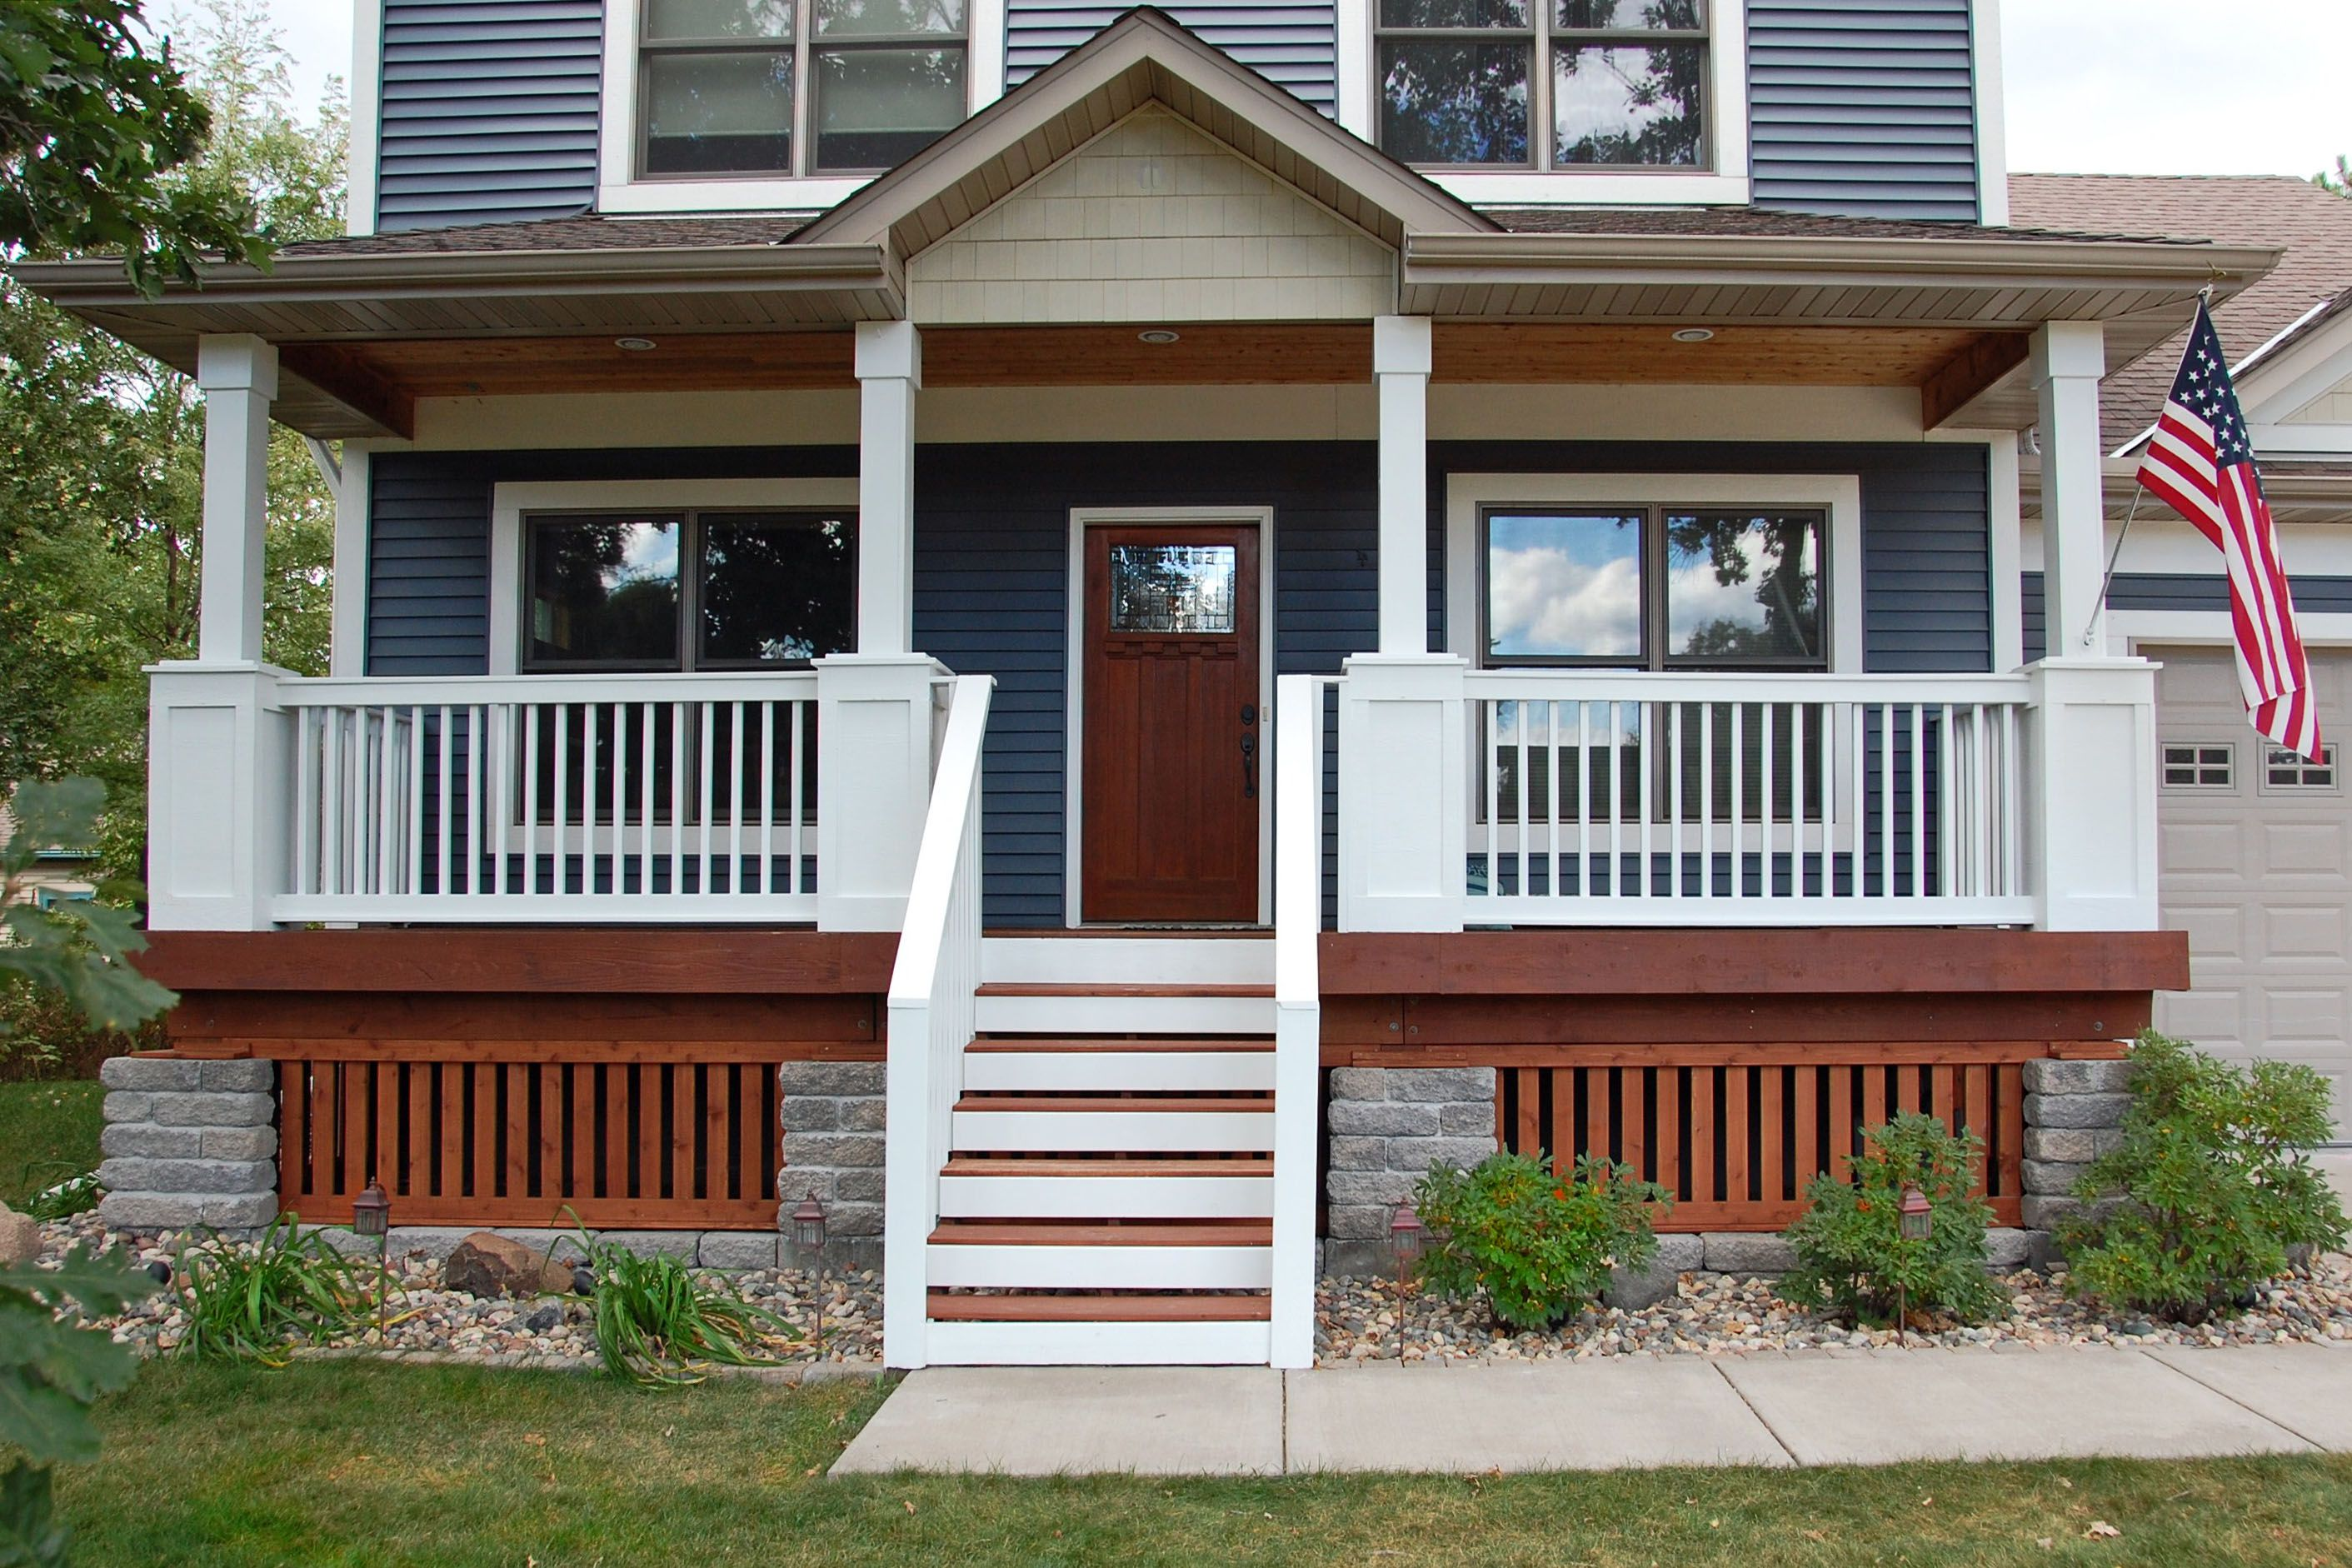 Choose Minimalist Front Porch Ideas for Small Space with White Fence and Wooden Stairs